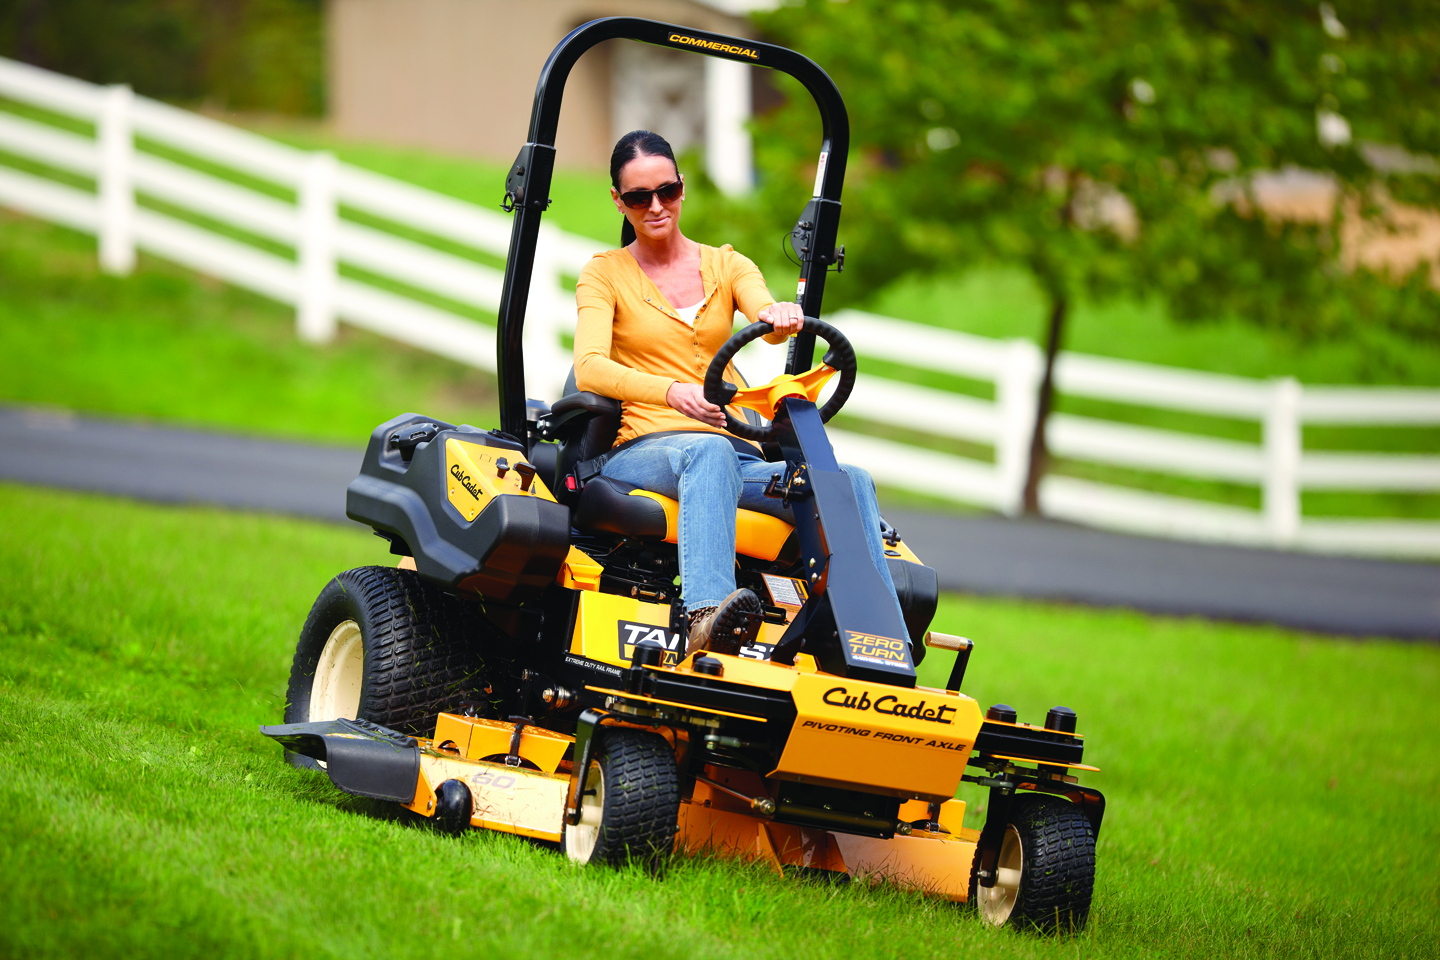 Lawn Mower CubCadet Zero Turn